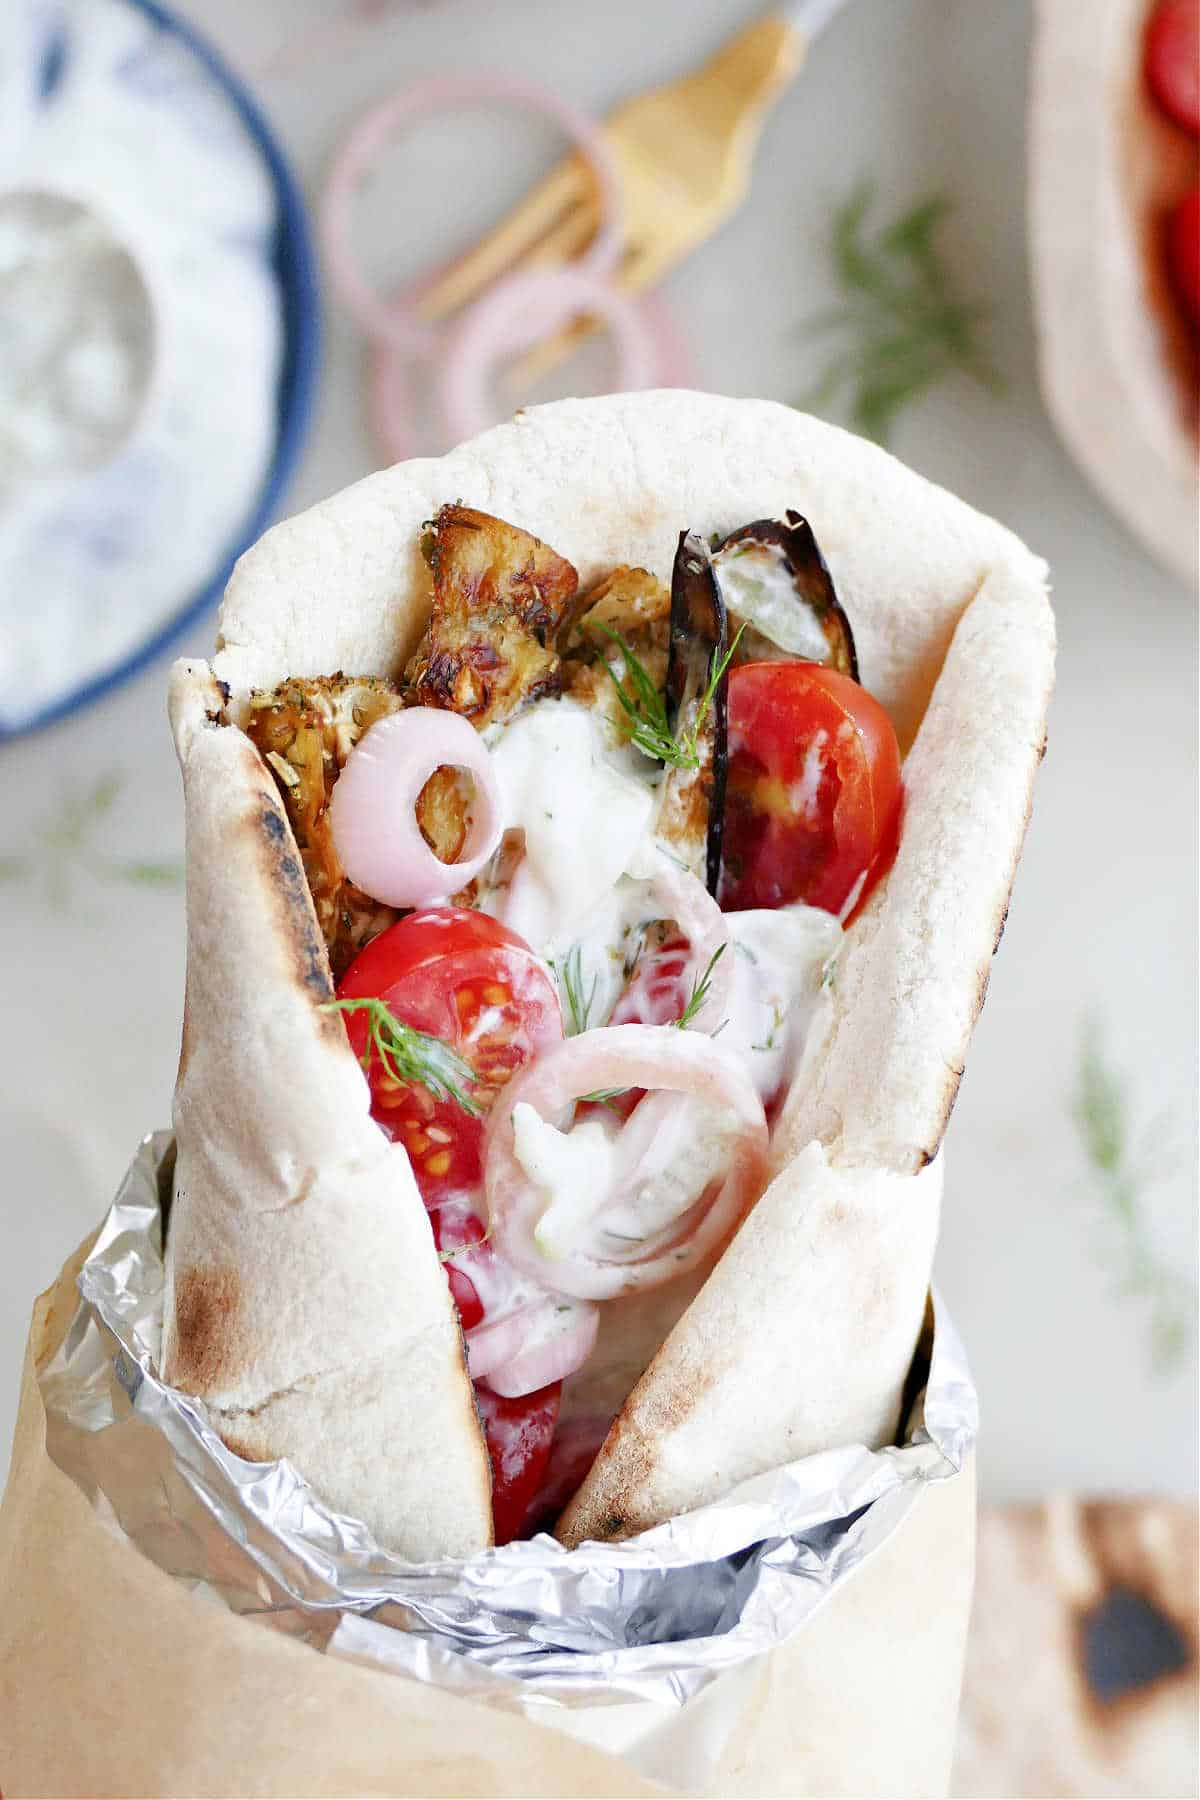 woman holding an eggplant gyro sandwich wrapped in foil and paper over a counter